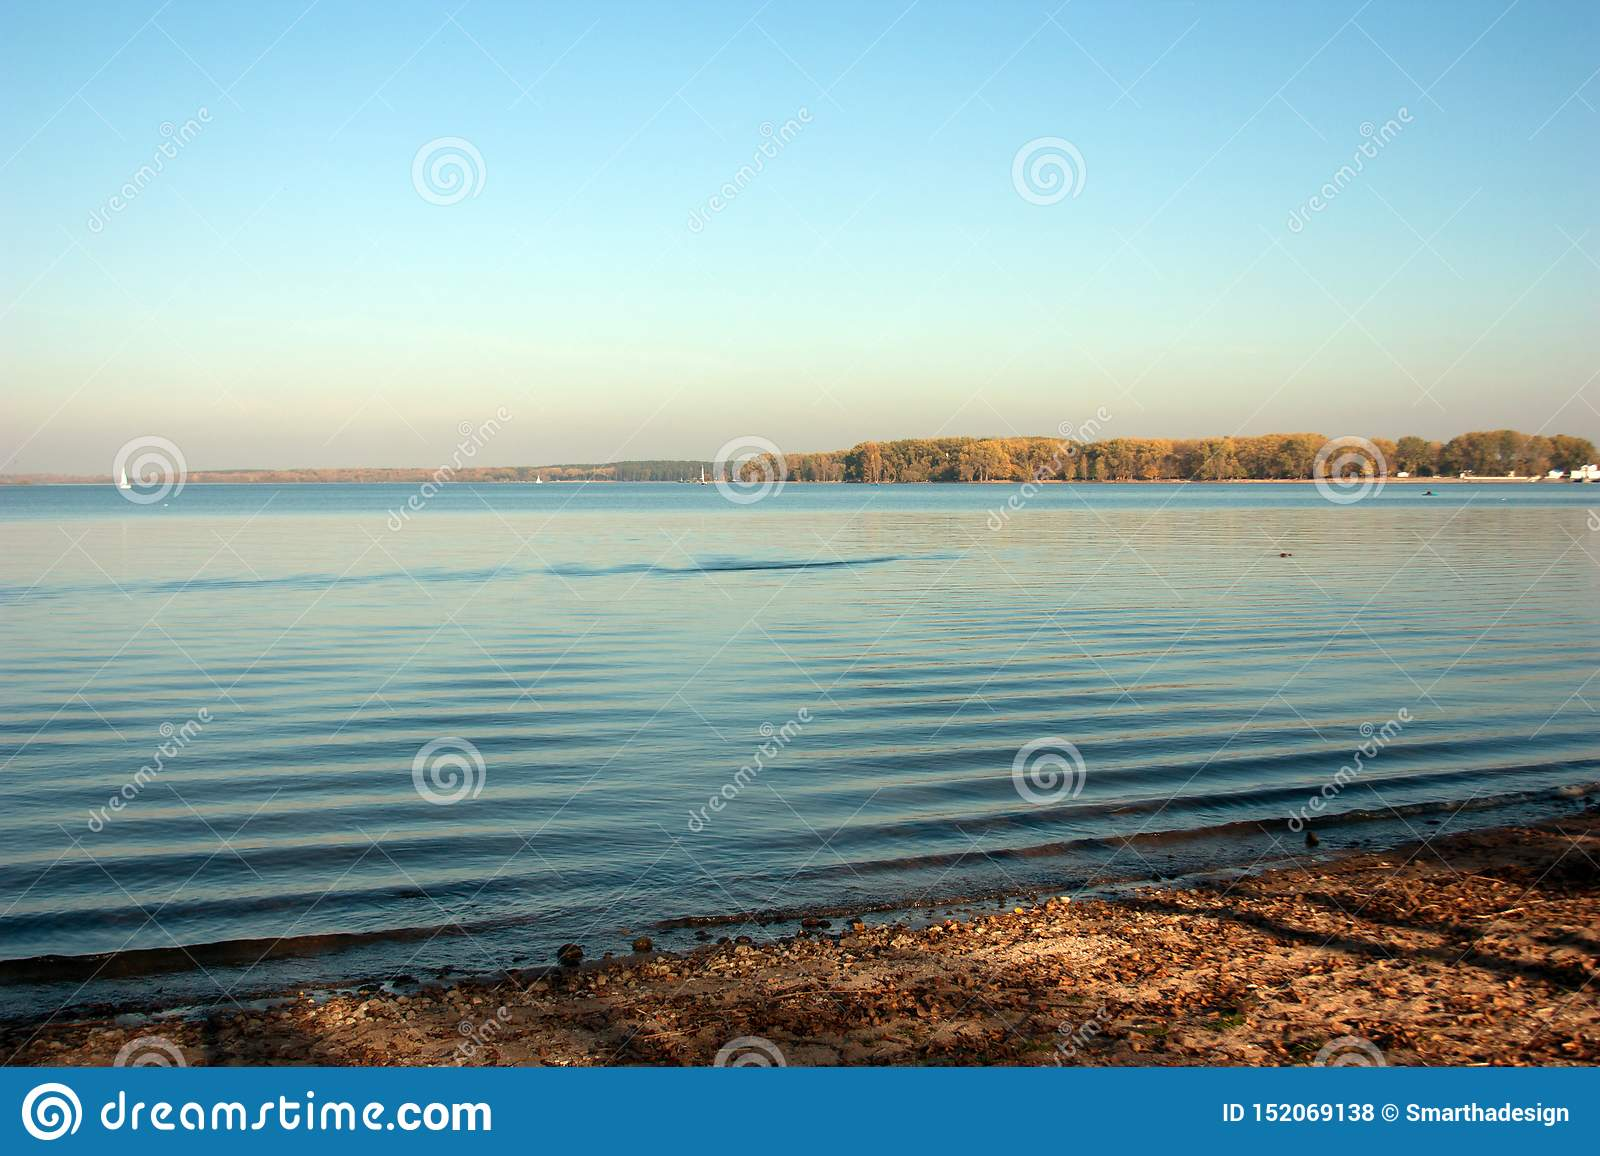 Beautiful lake landscape, and sunset. Blue waves and horizon line on water. Beautiful background